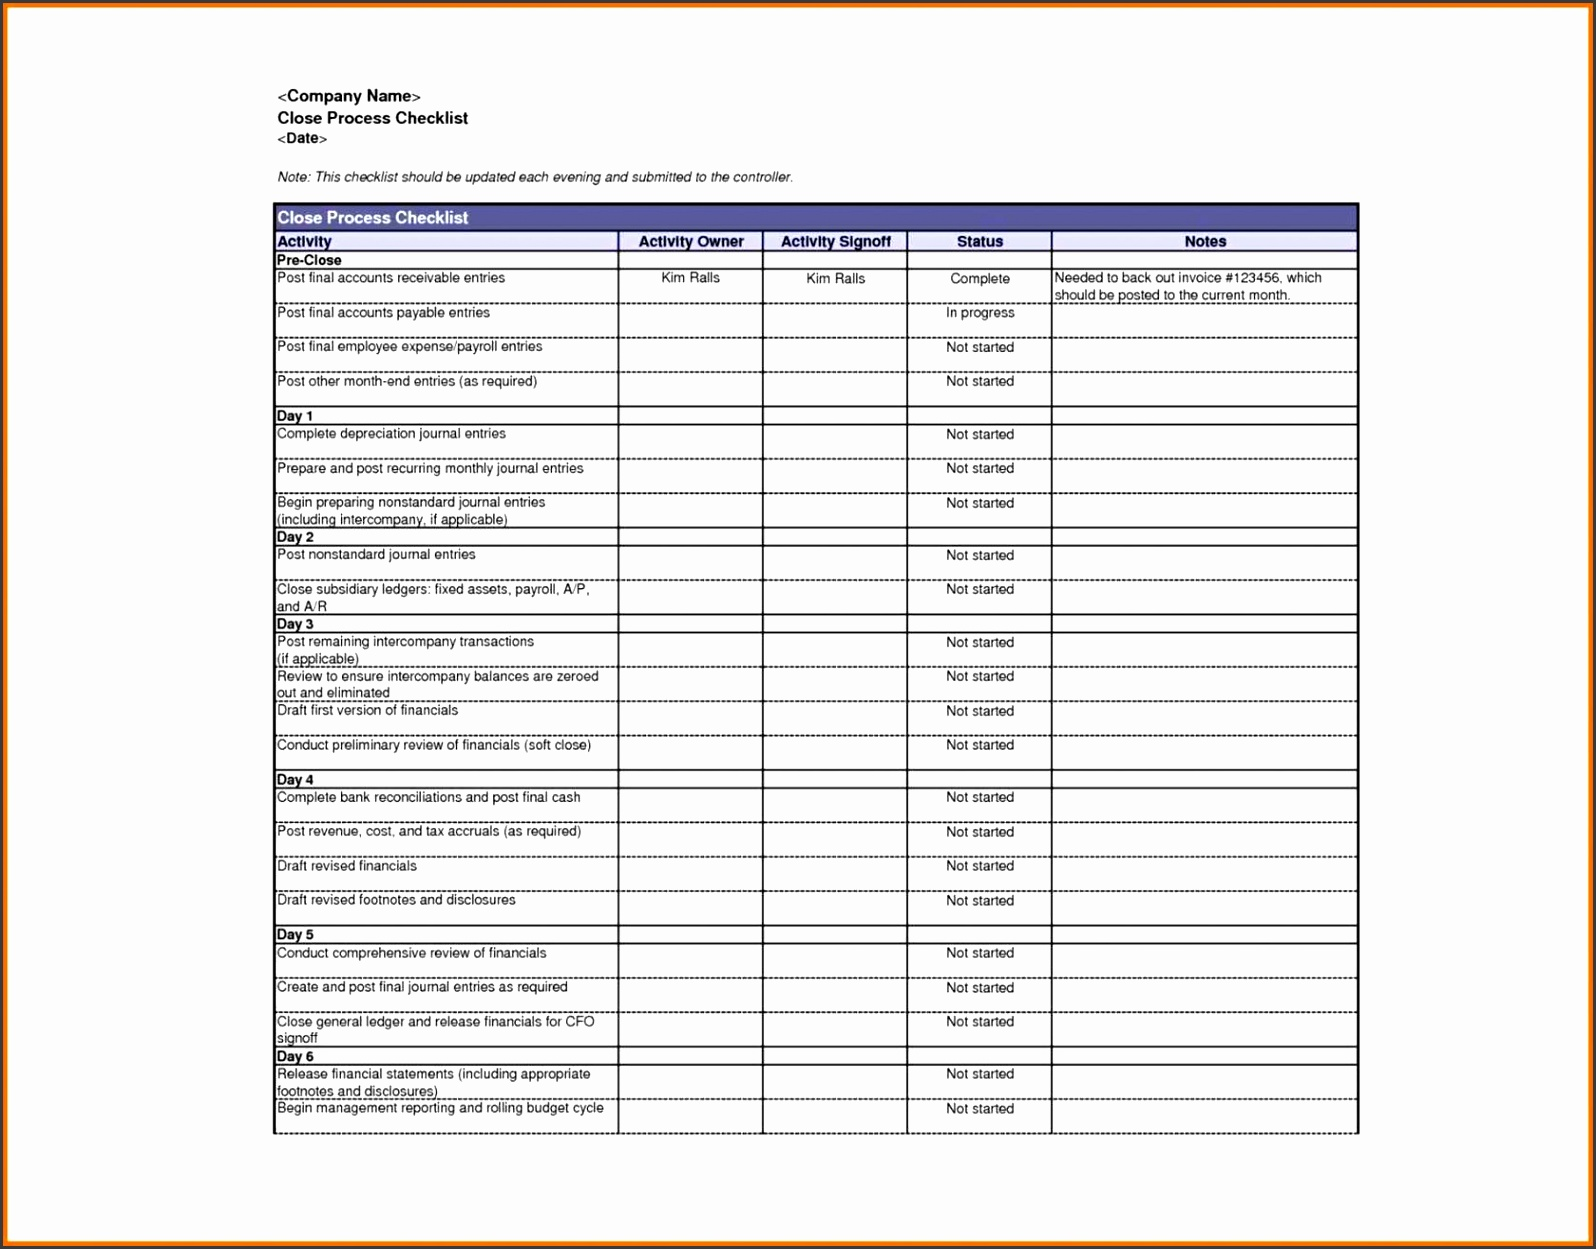 5 Microsoft Office Checklist Template